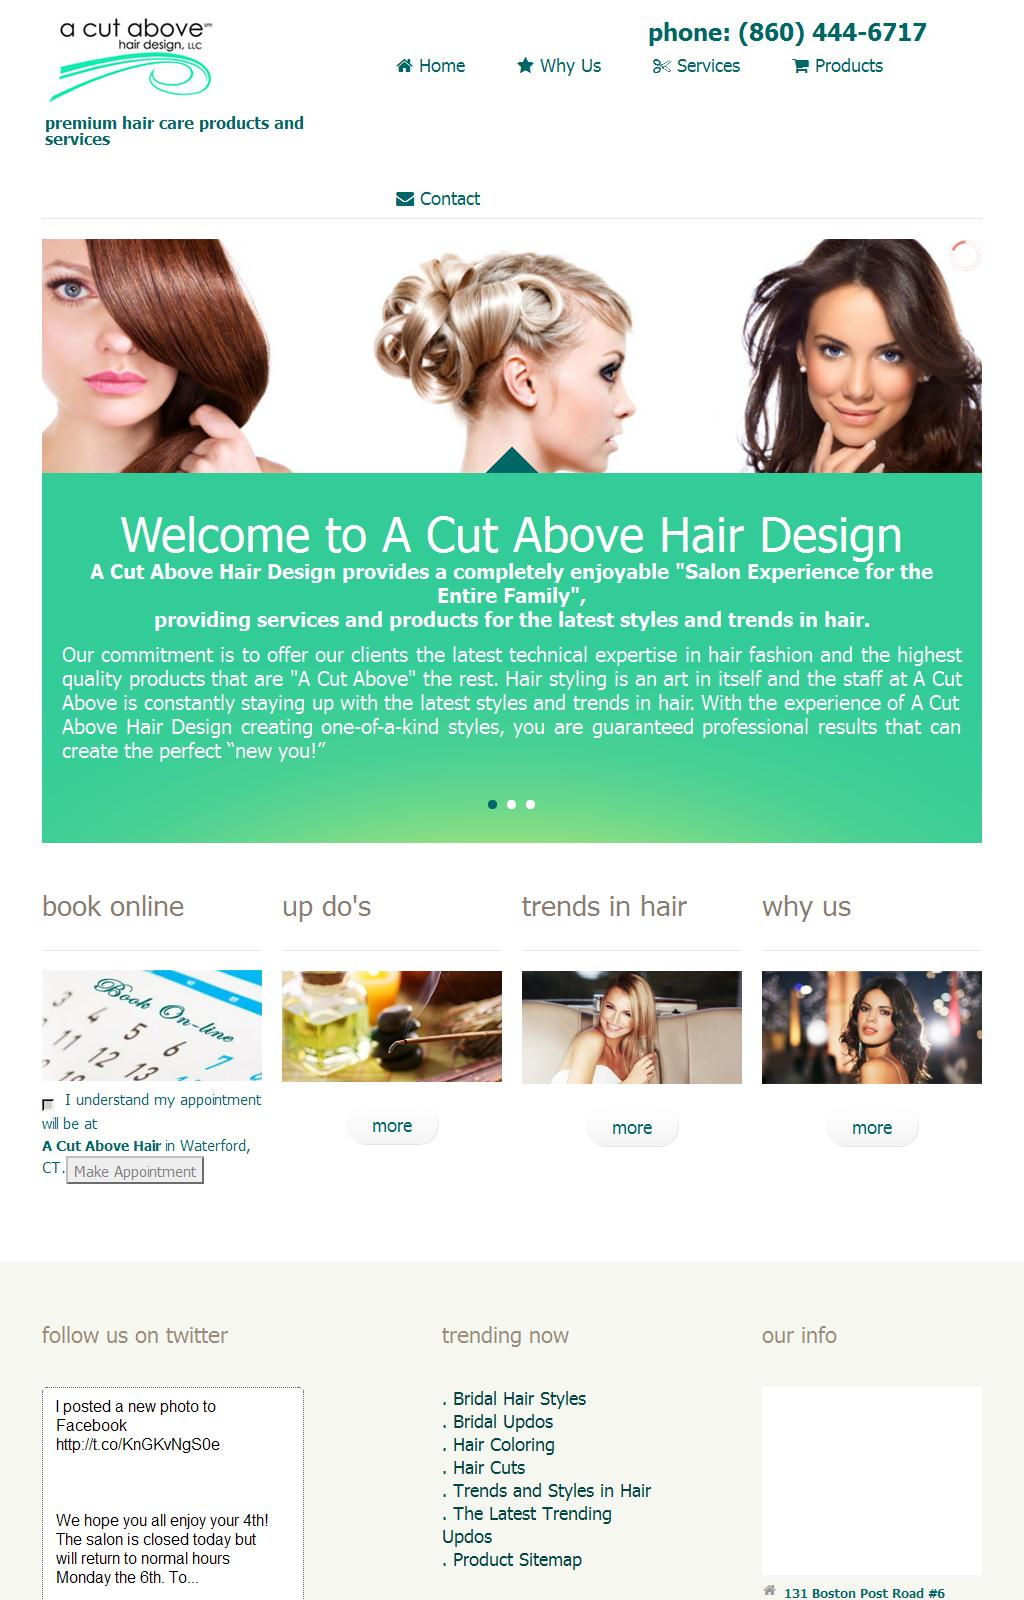 A Cut Above Hair Design | Premium Hair Care Products and Services